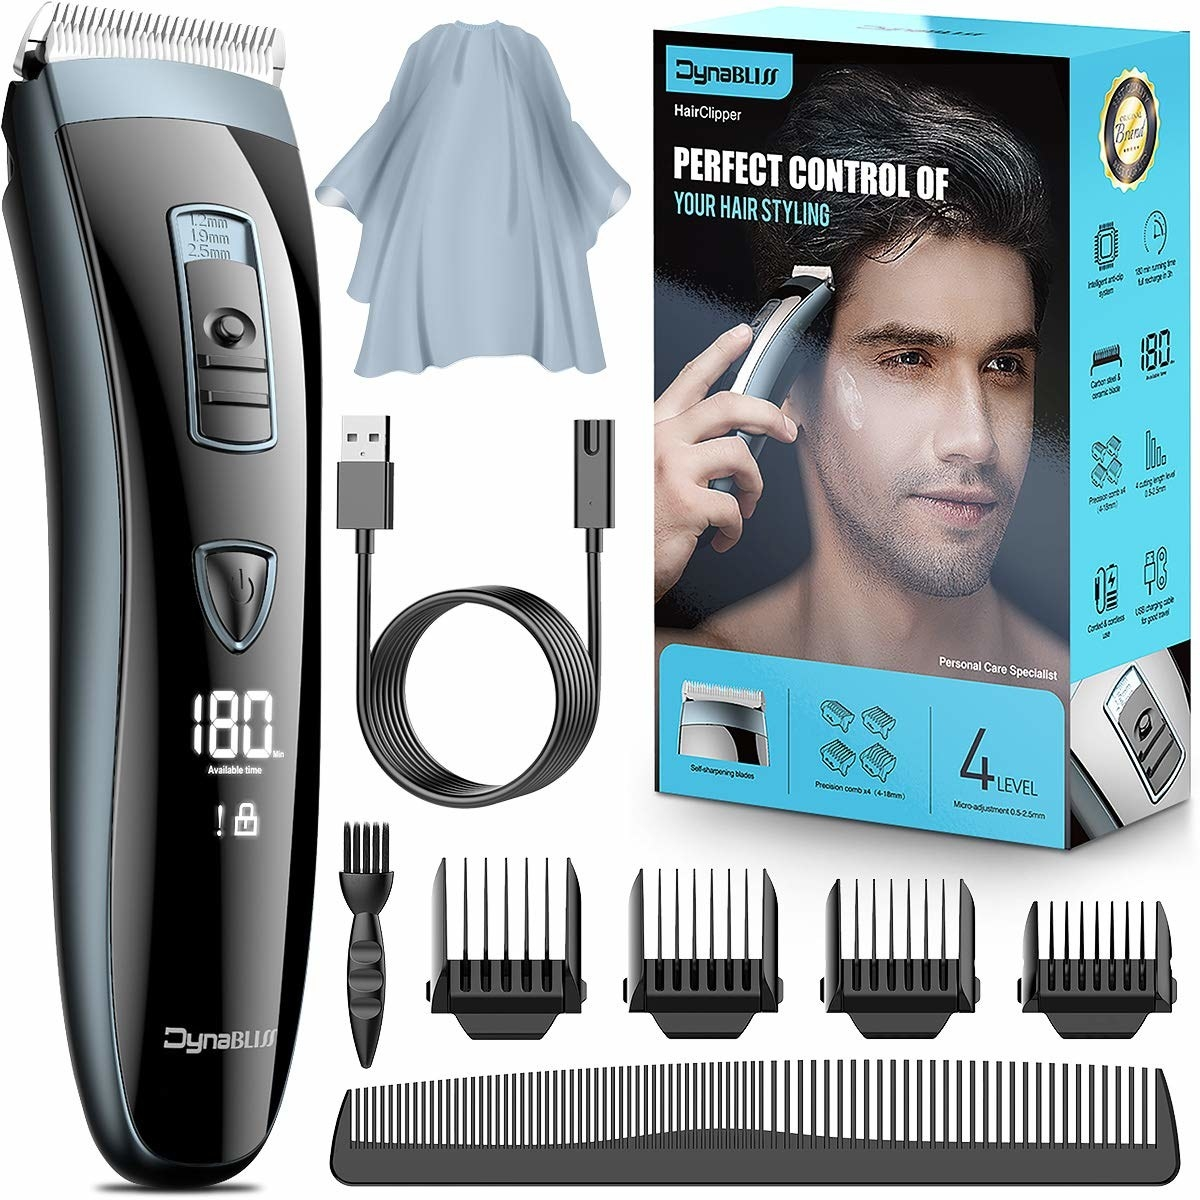 The complete cordless hair clipper set